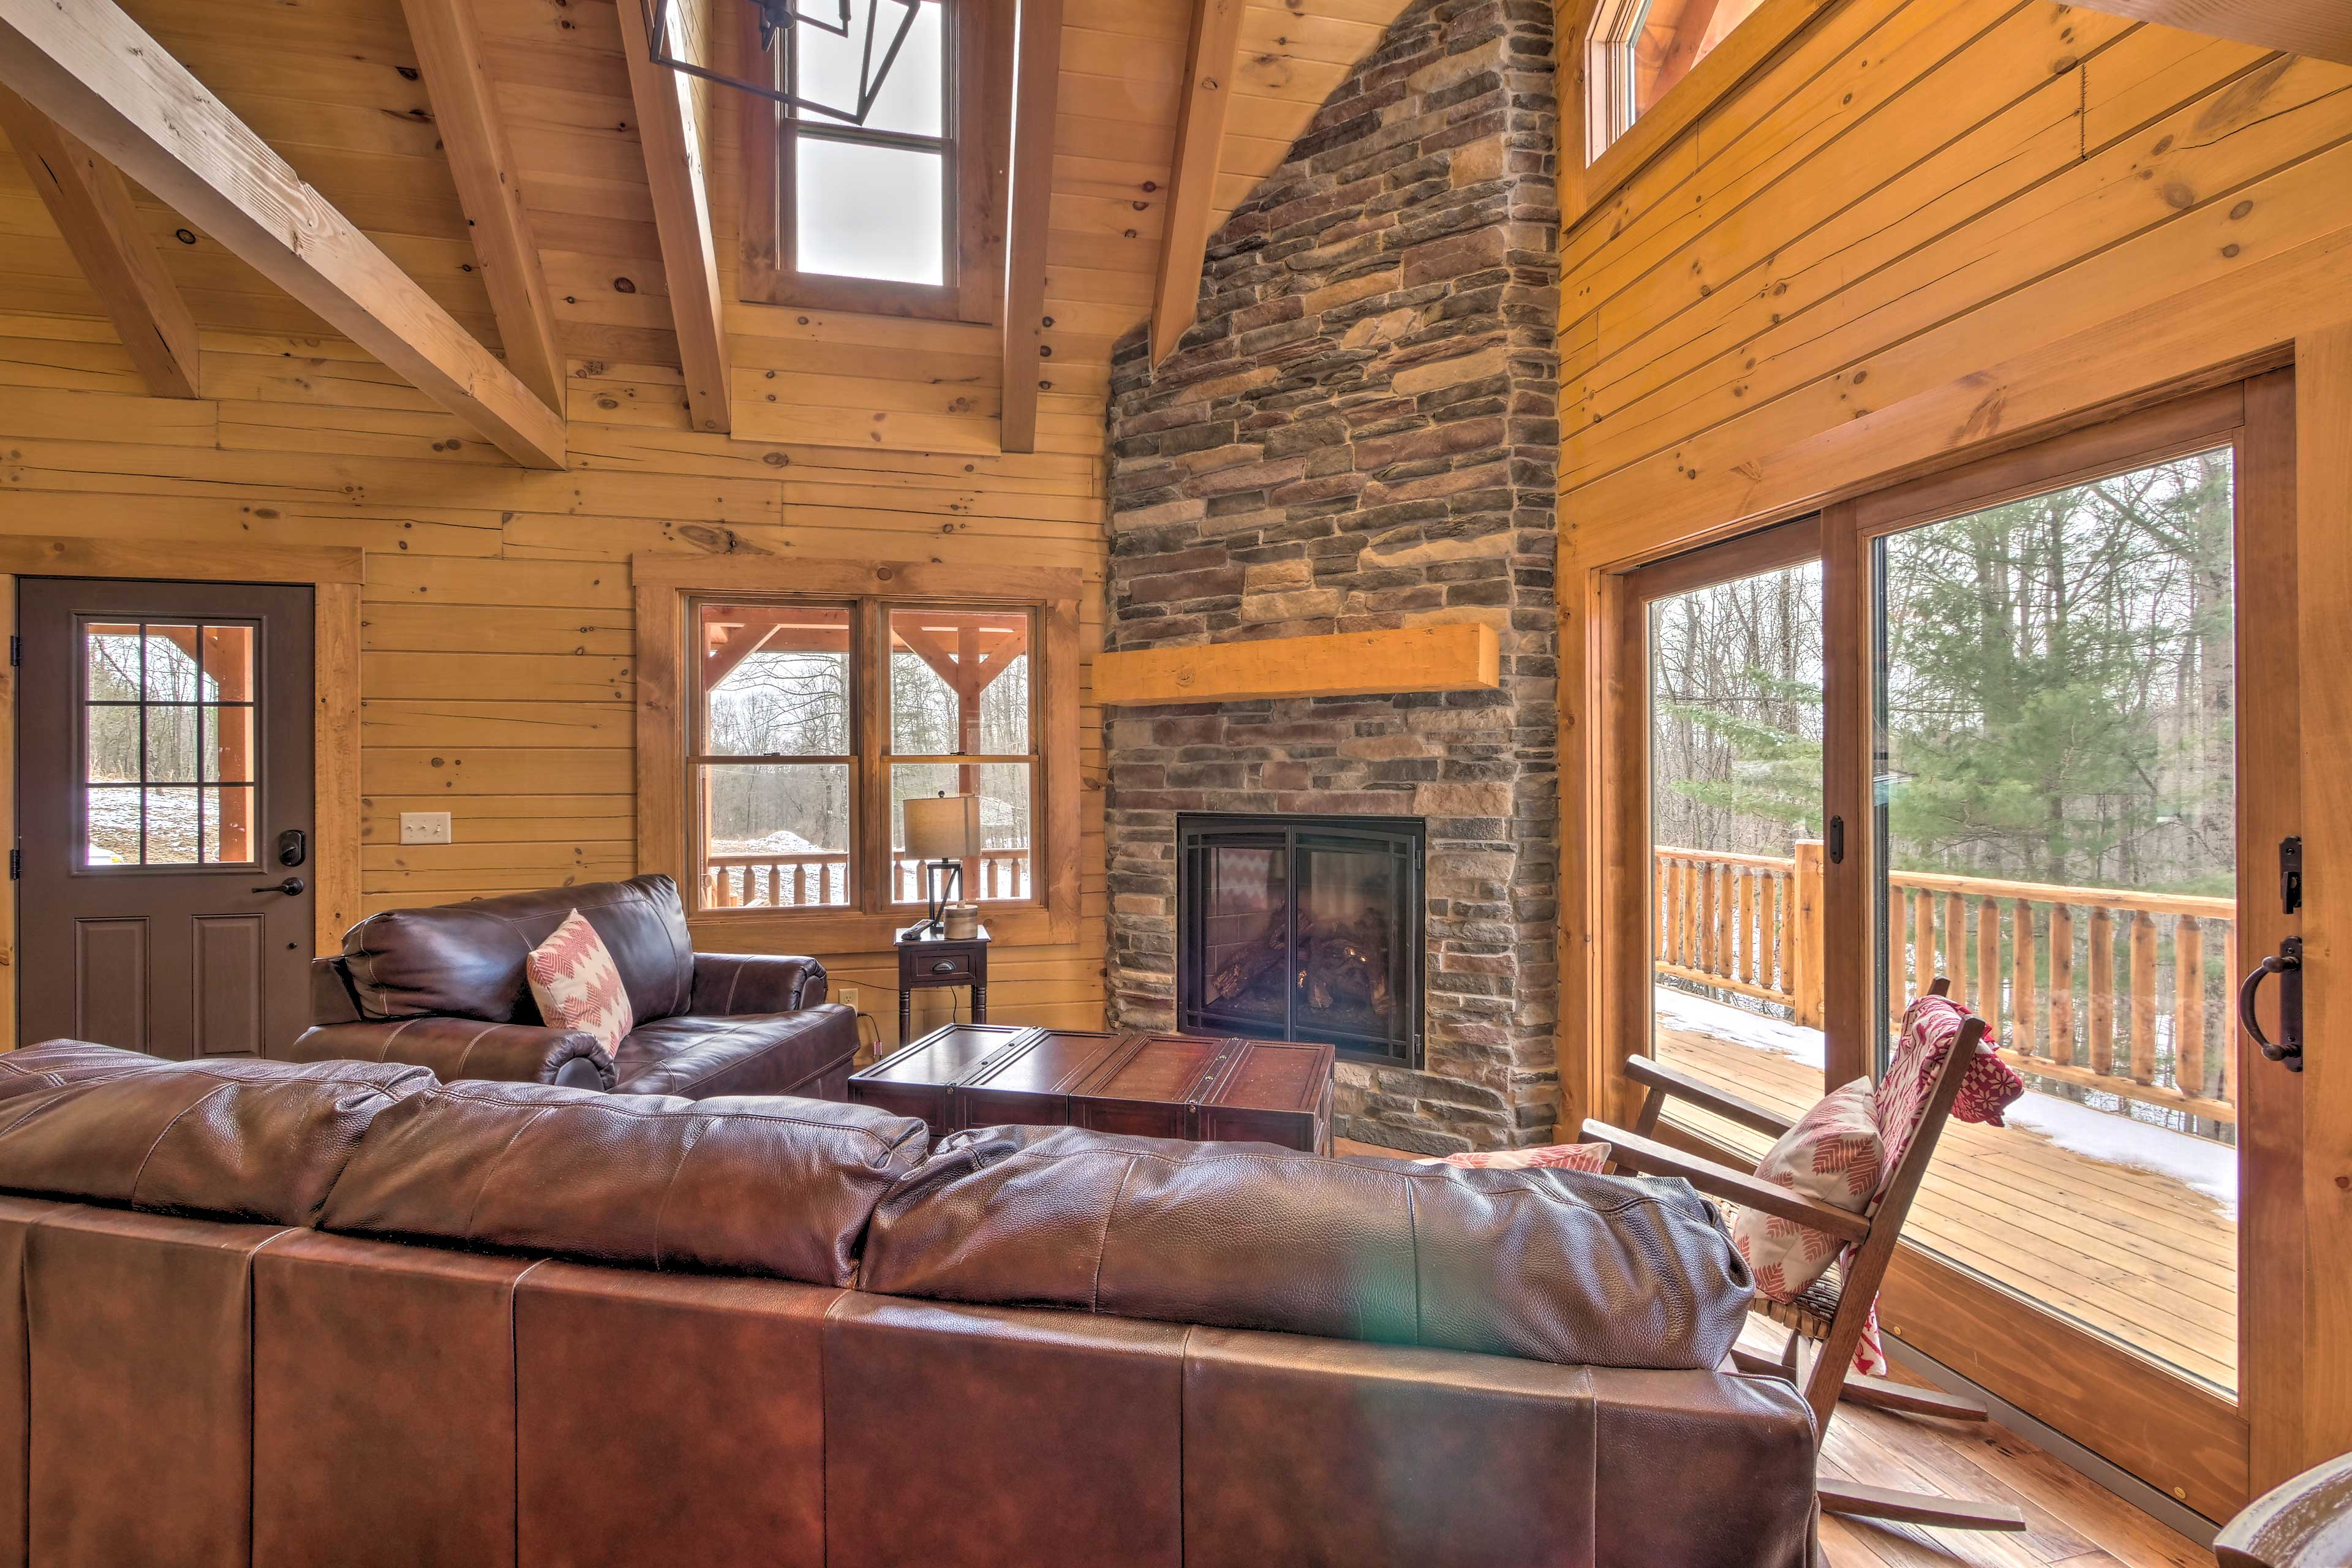 The stone fireplace will keep you warm on cool winter nights.